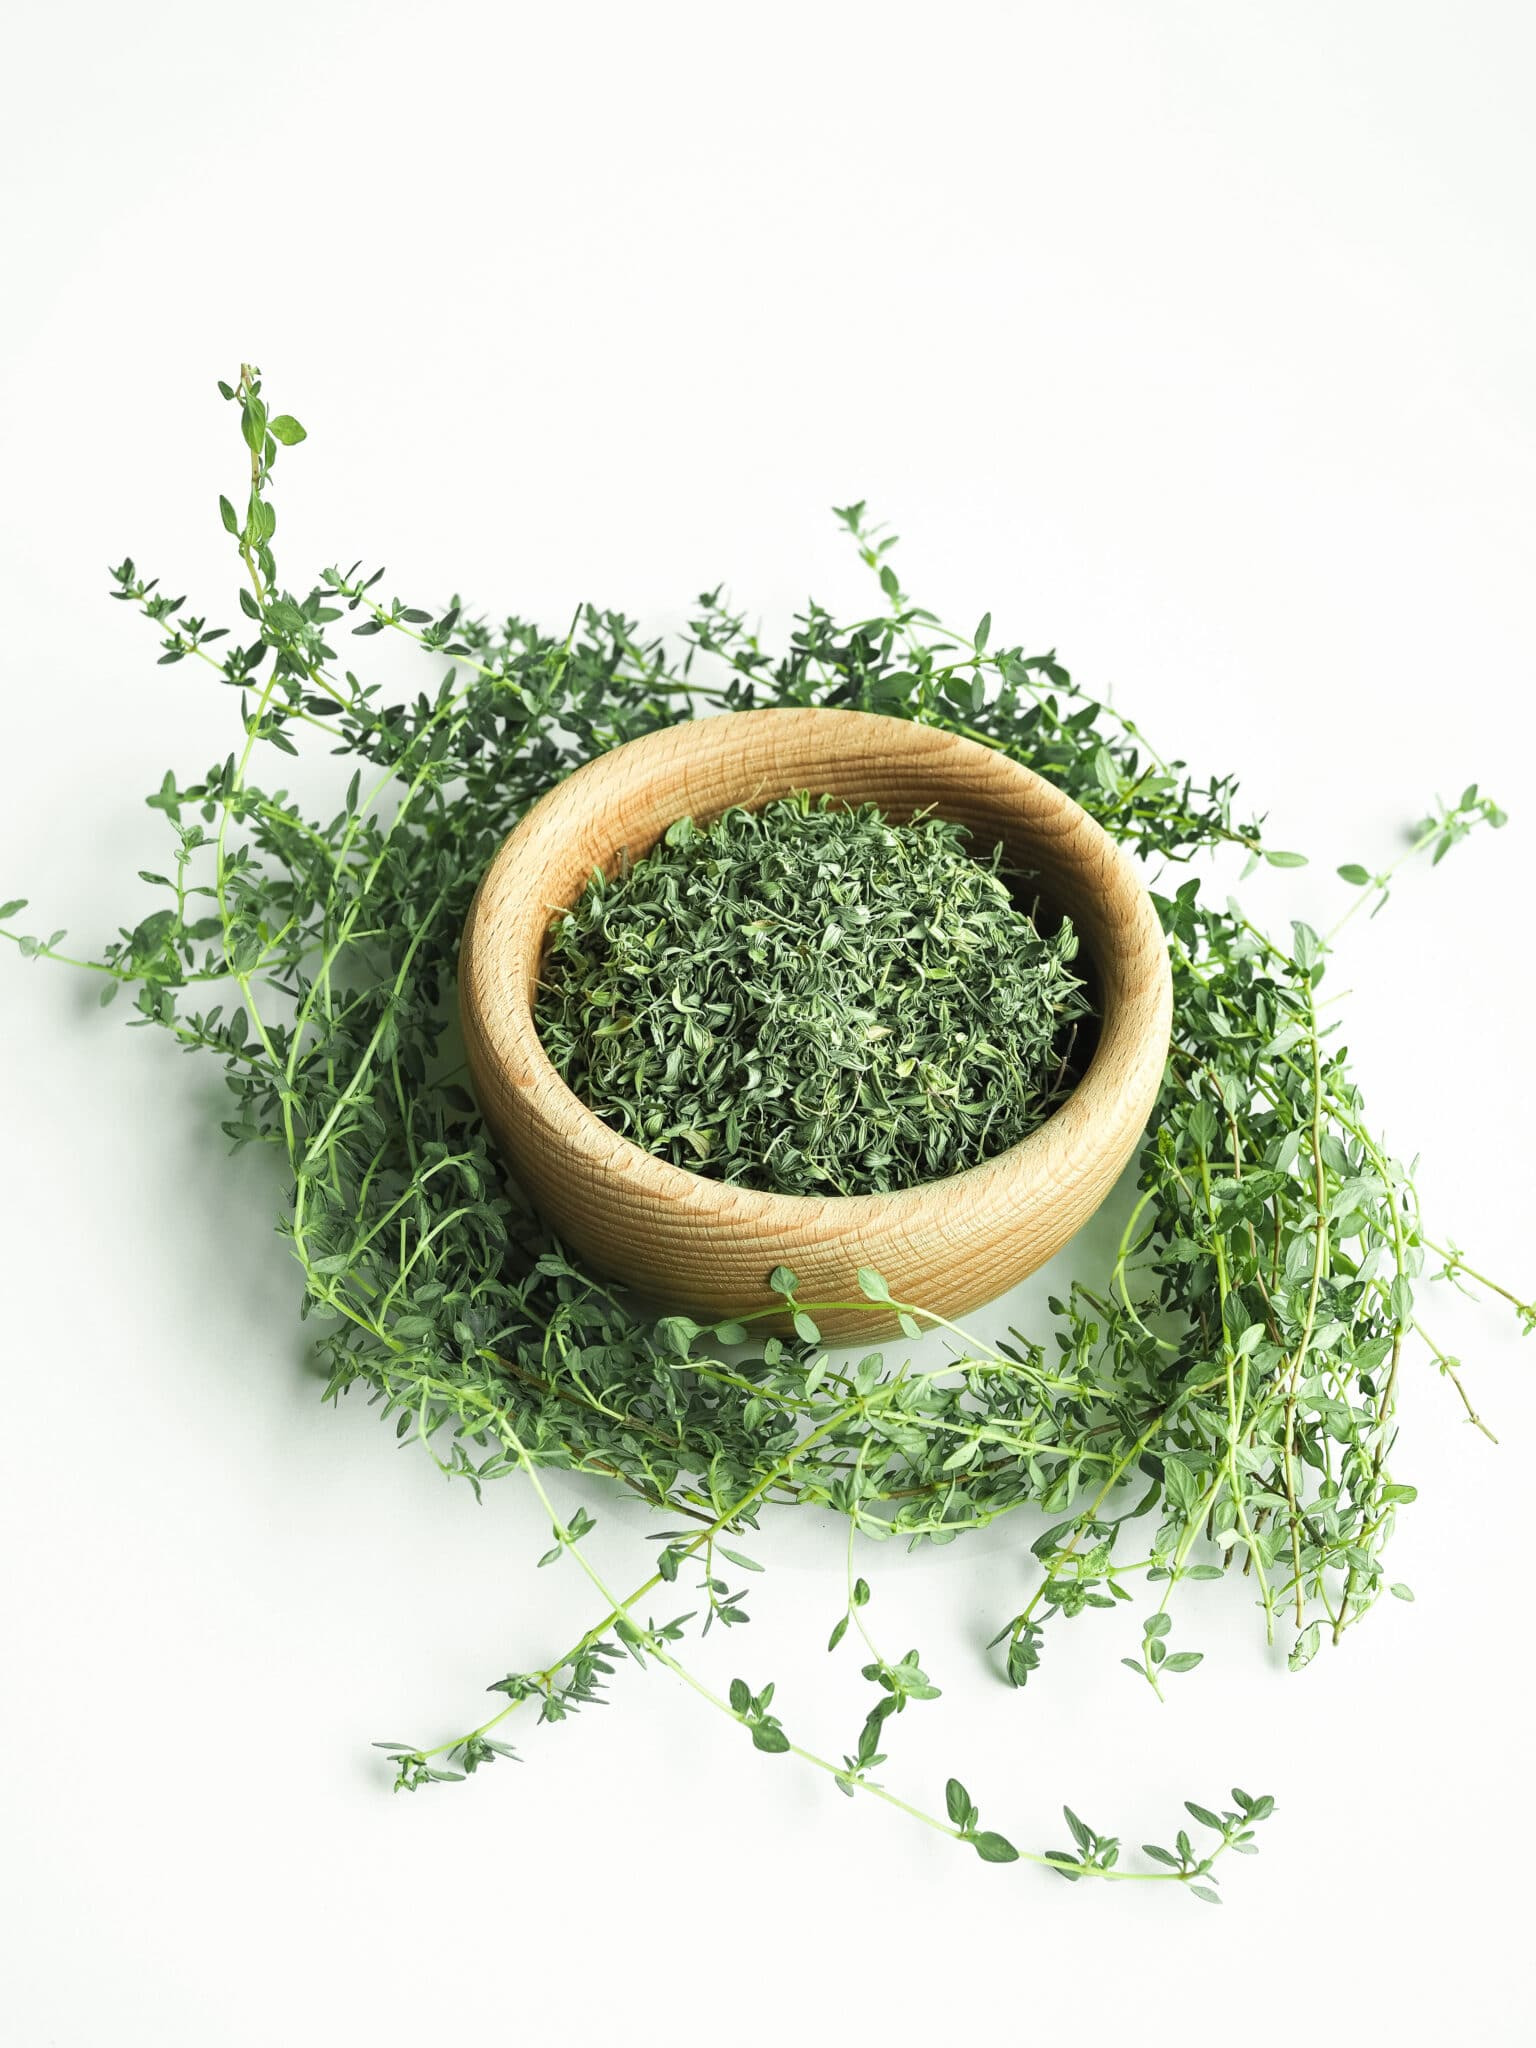 Wooden bowl of dry thyme on white background.